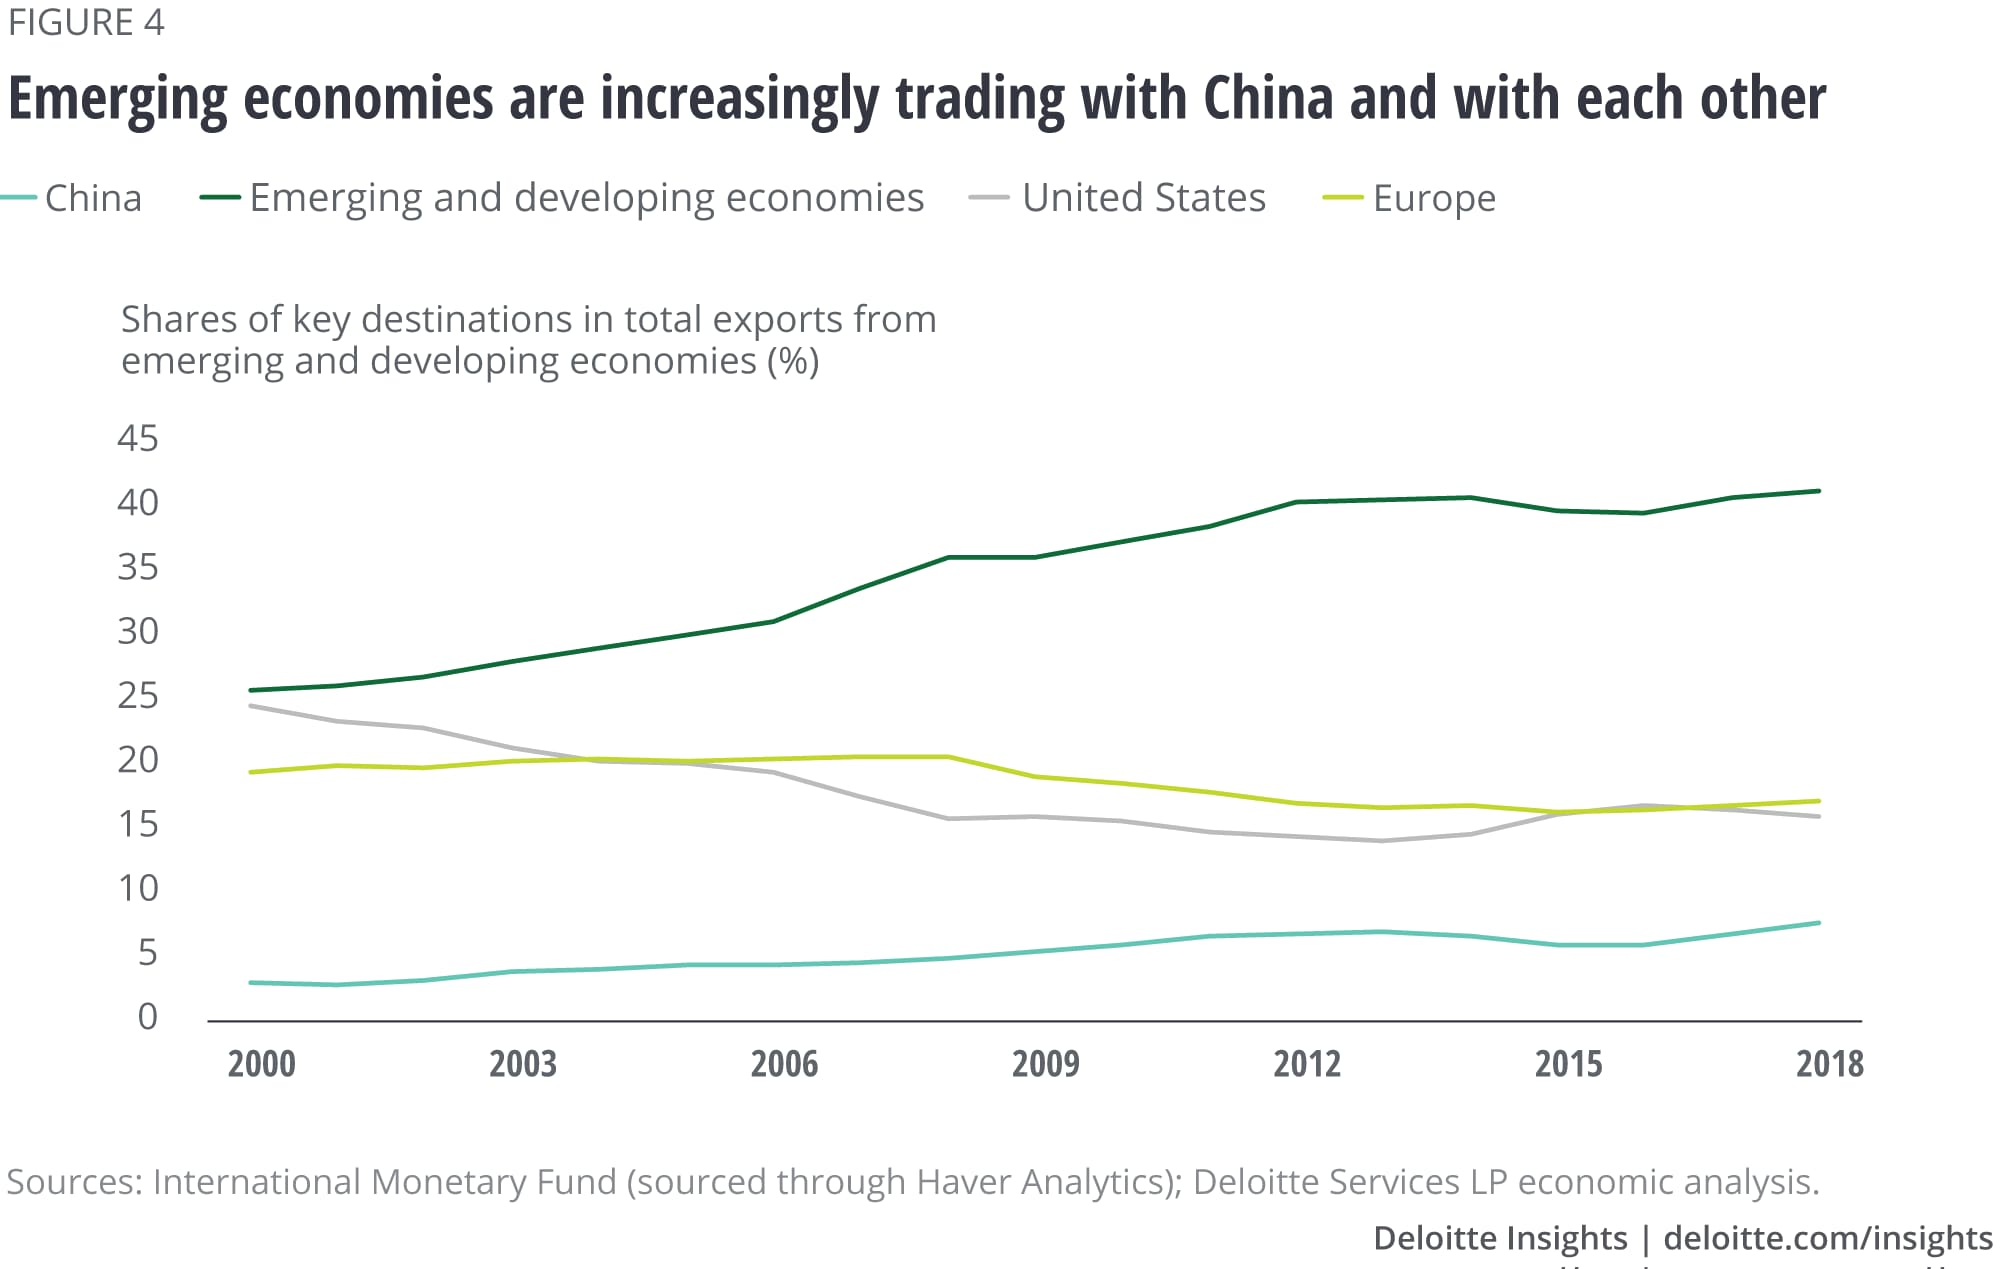 Emerging economies are increasingly trading with China and with each other